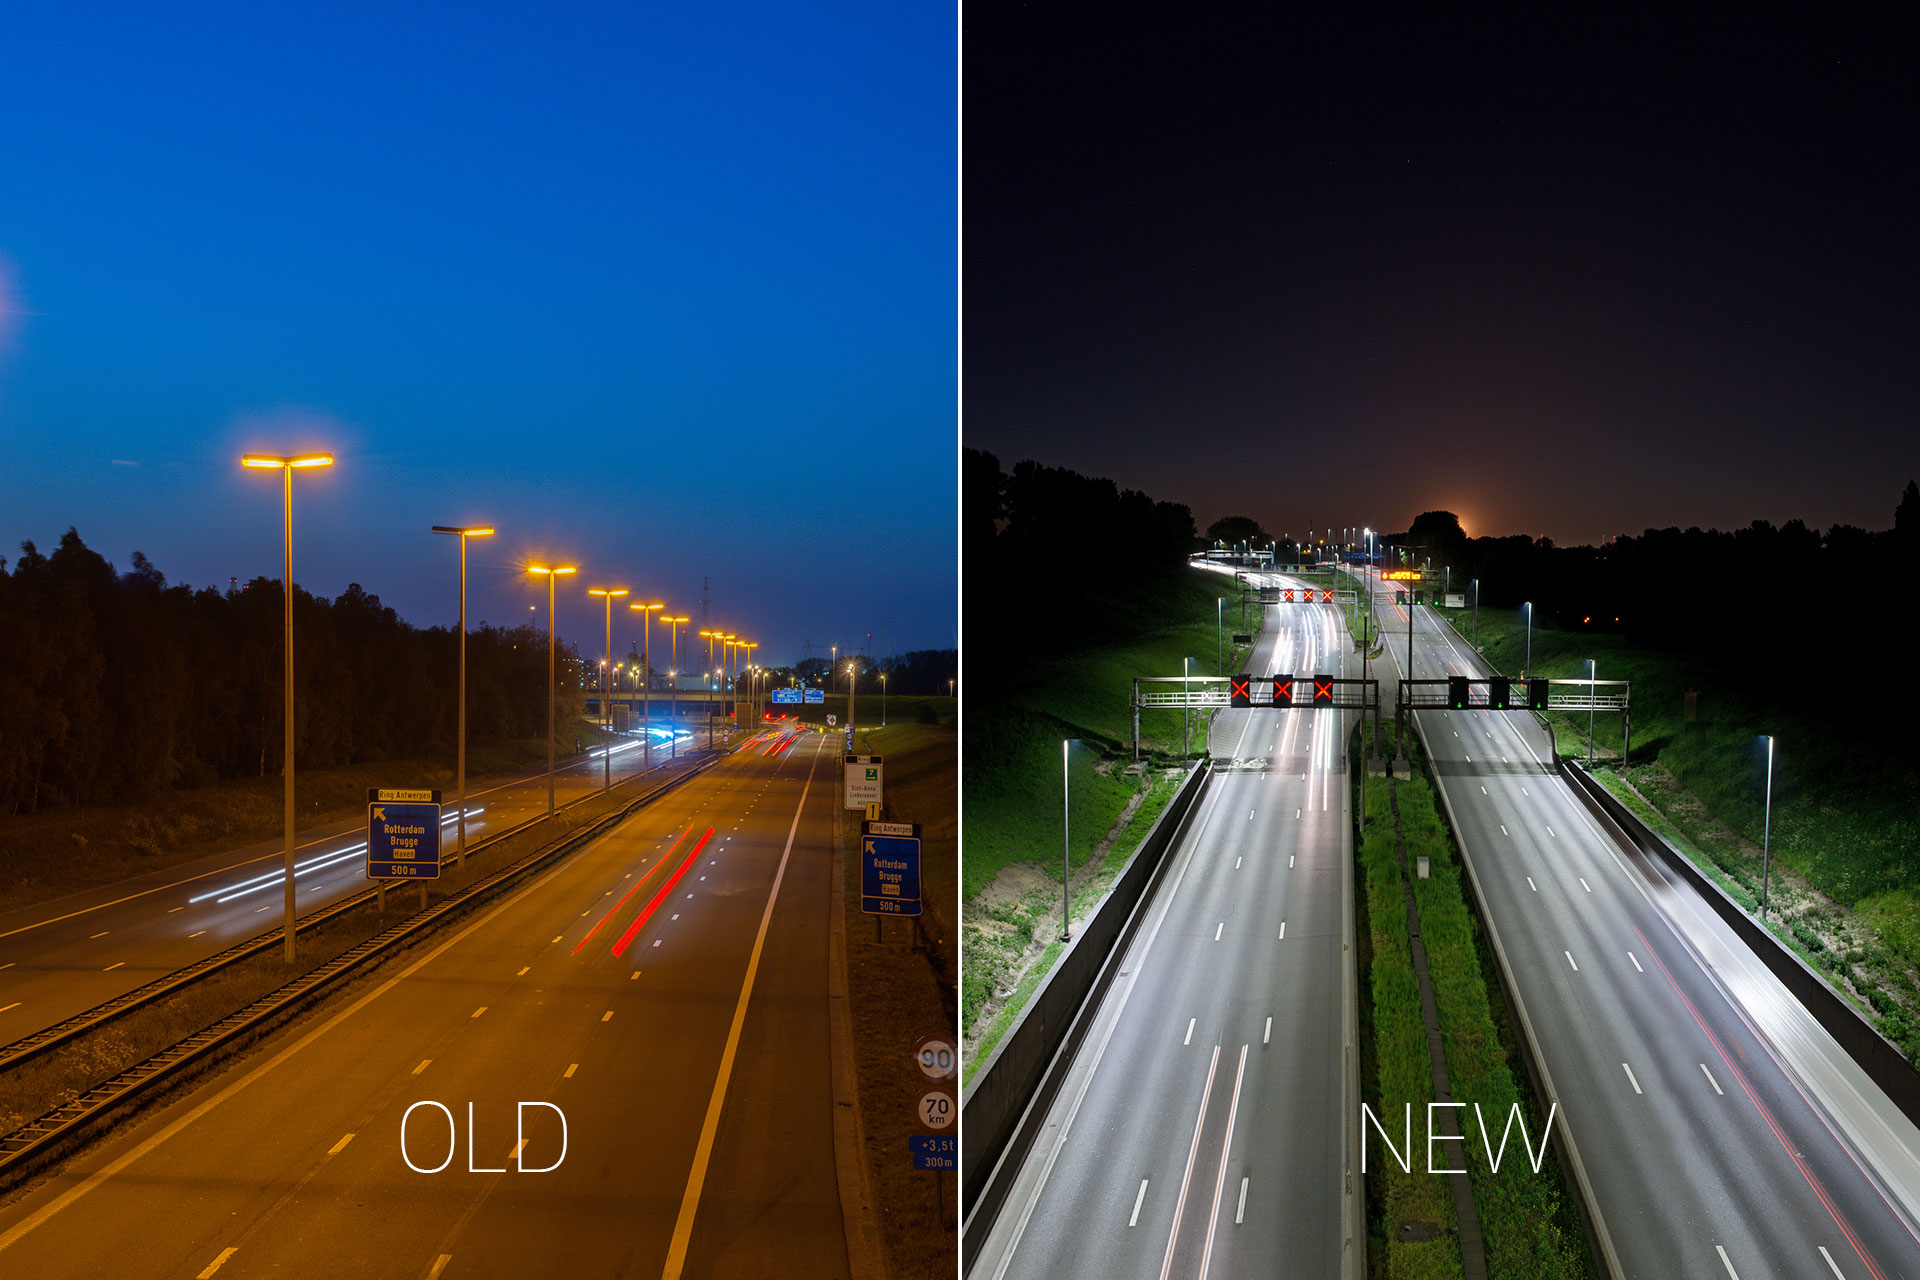 Teceo LED luminaires have dramatically improved visibility on the E17 in Belgium, by providing a bright white light